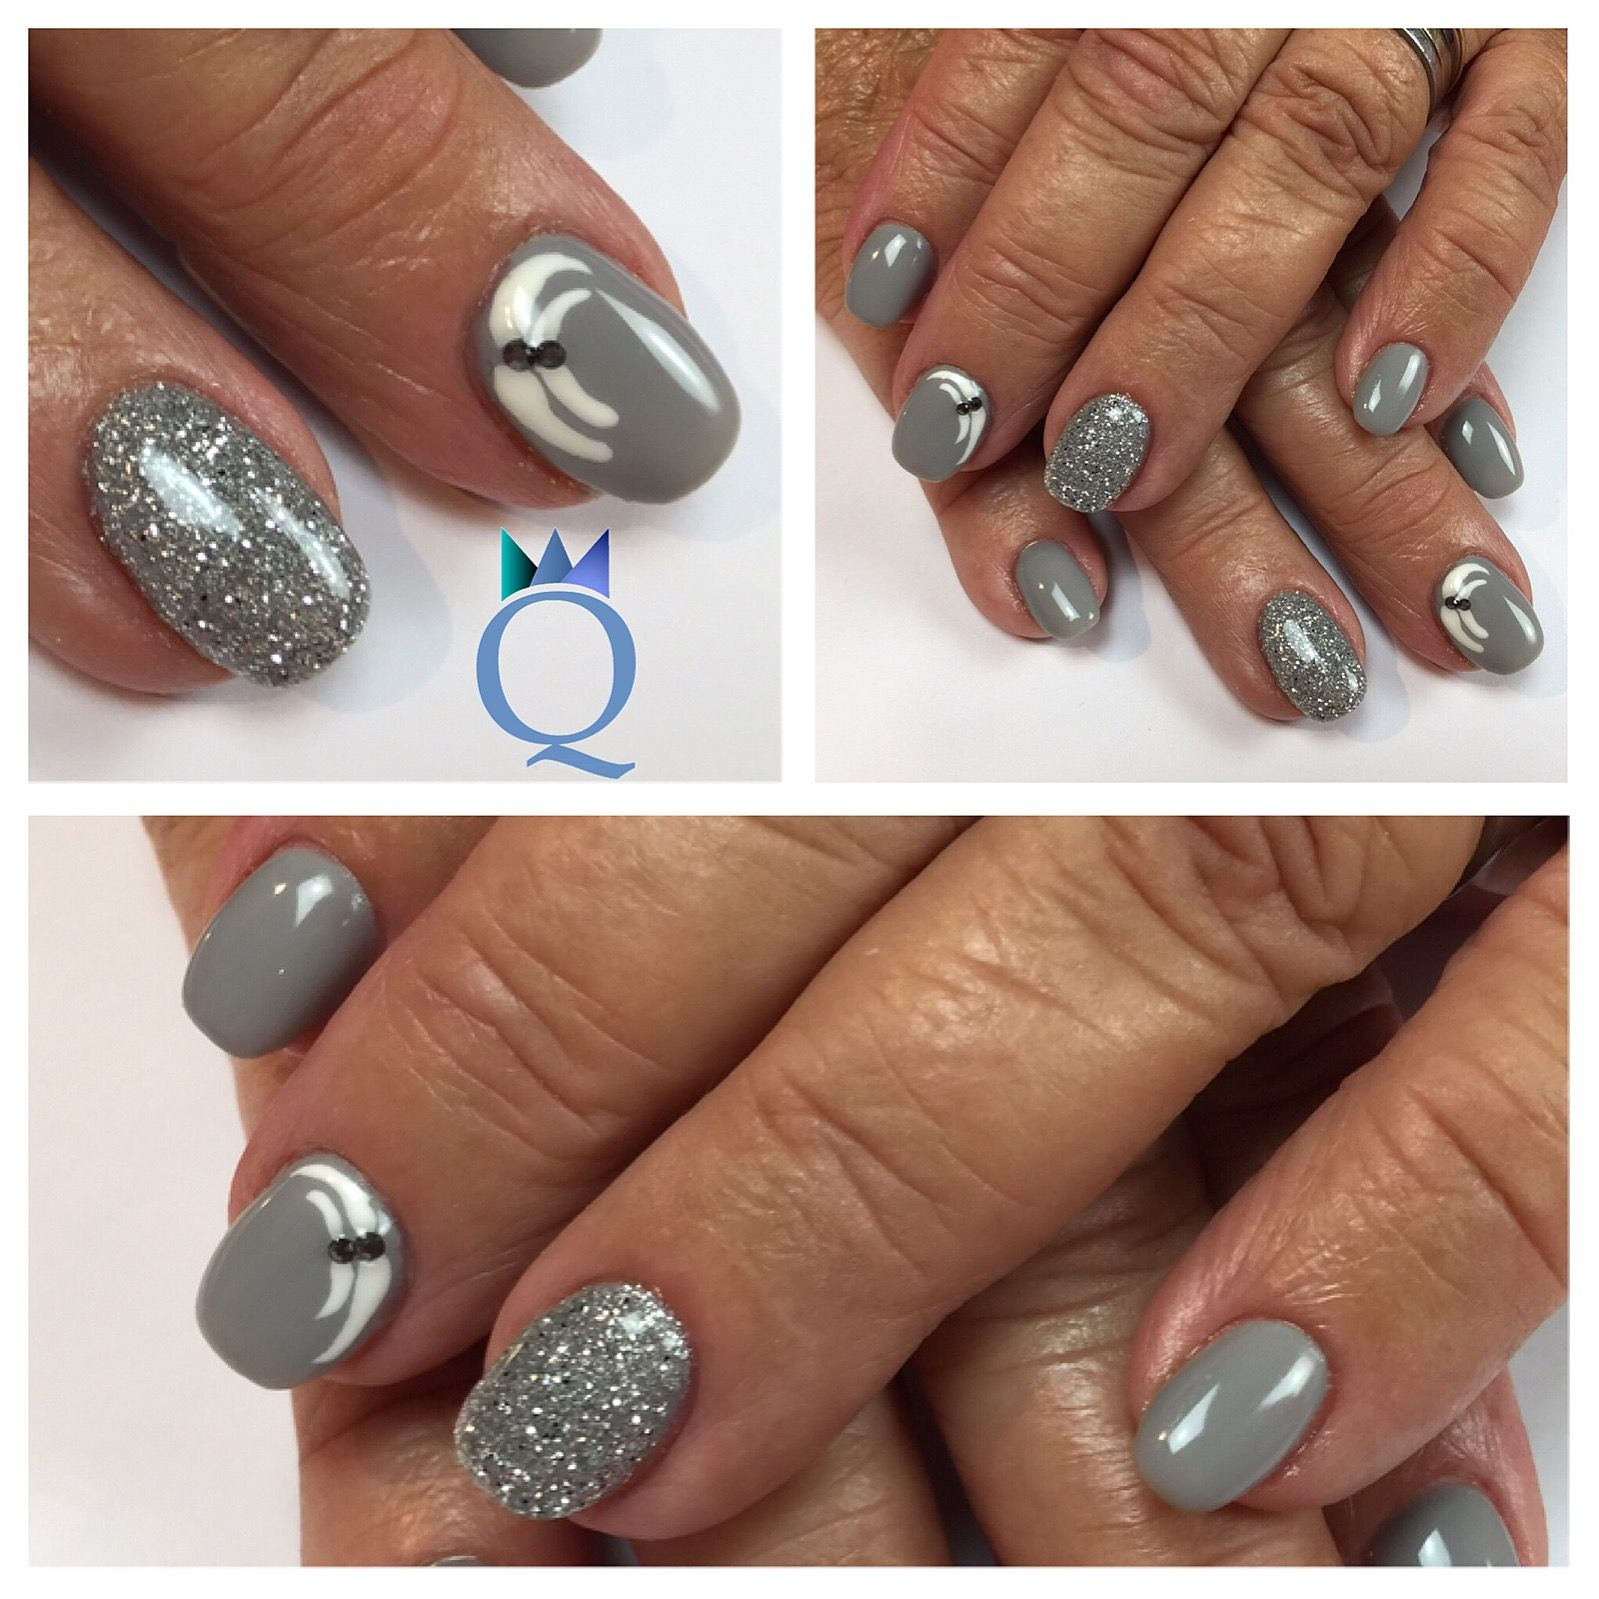 shortnails gelnails nails grey silver glitter stones kurzen gel geln gel n gel grau. Black Bedroom Furniture Sets. Home Design Ideas